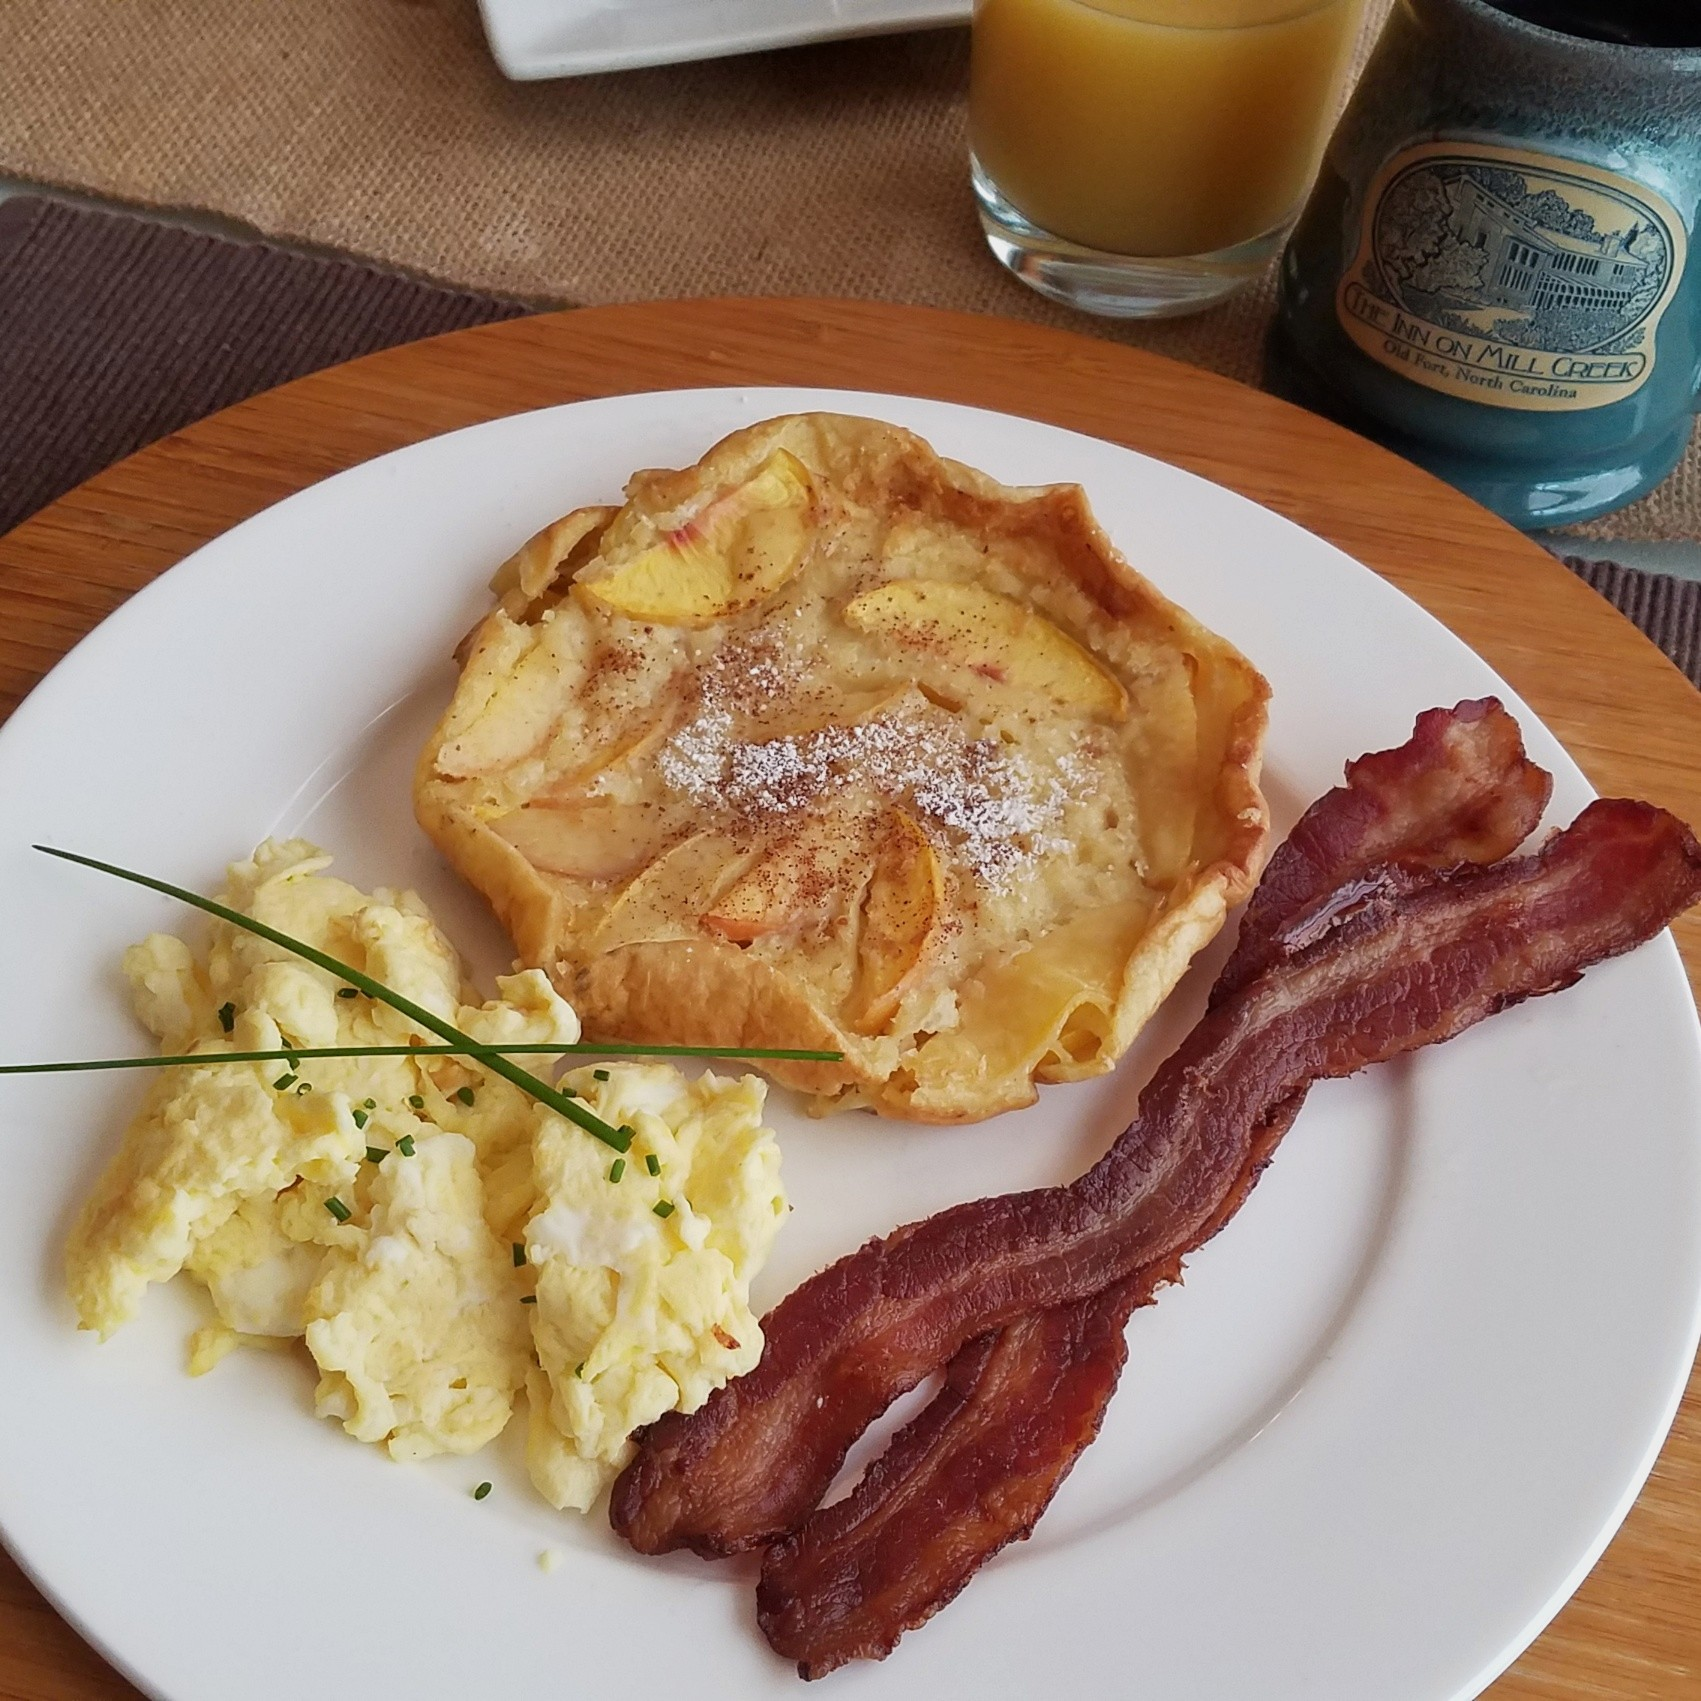 Breakfast plated with peach dutch baby pancake, scrambled eggs and bacon along with coffee in a mug and orange juice